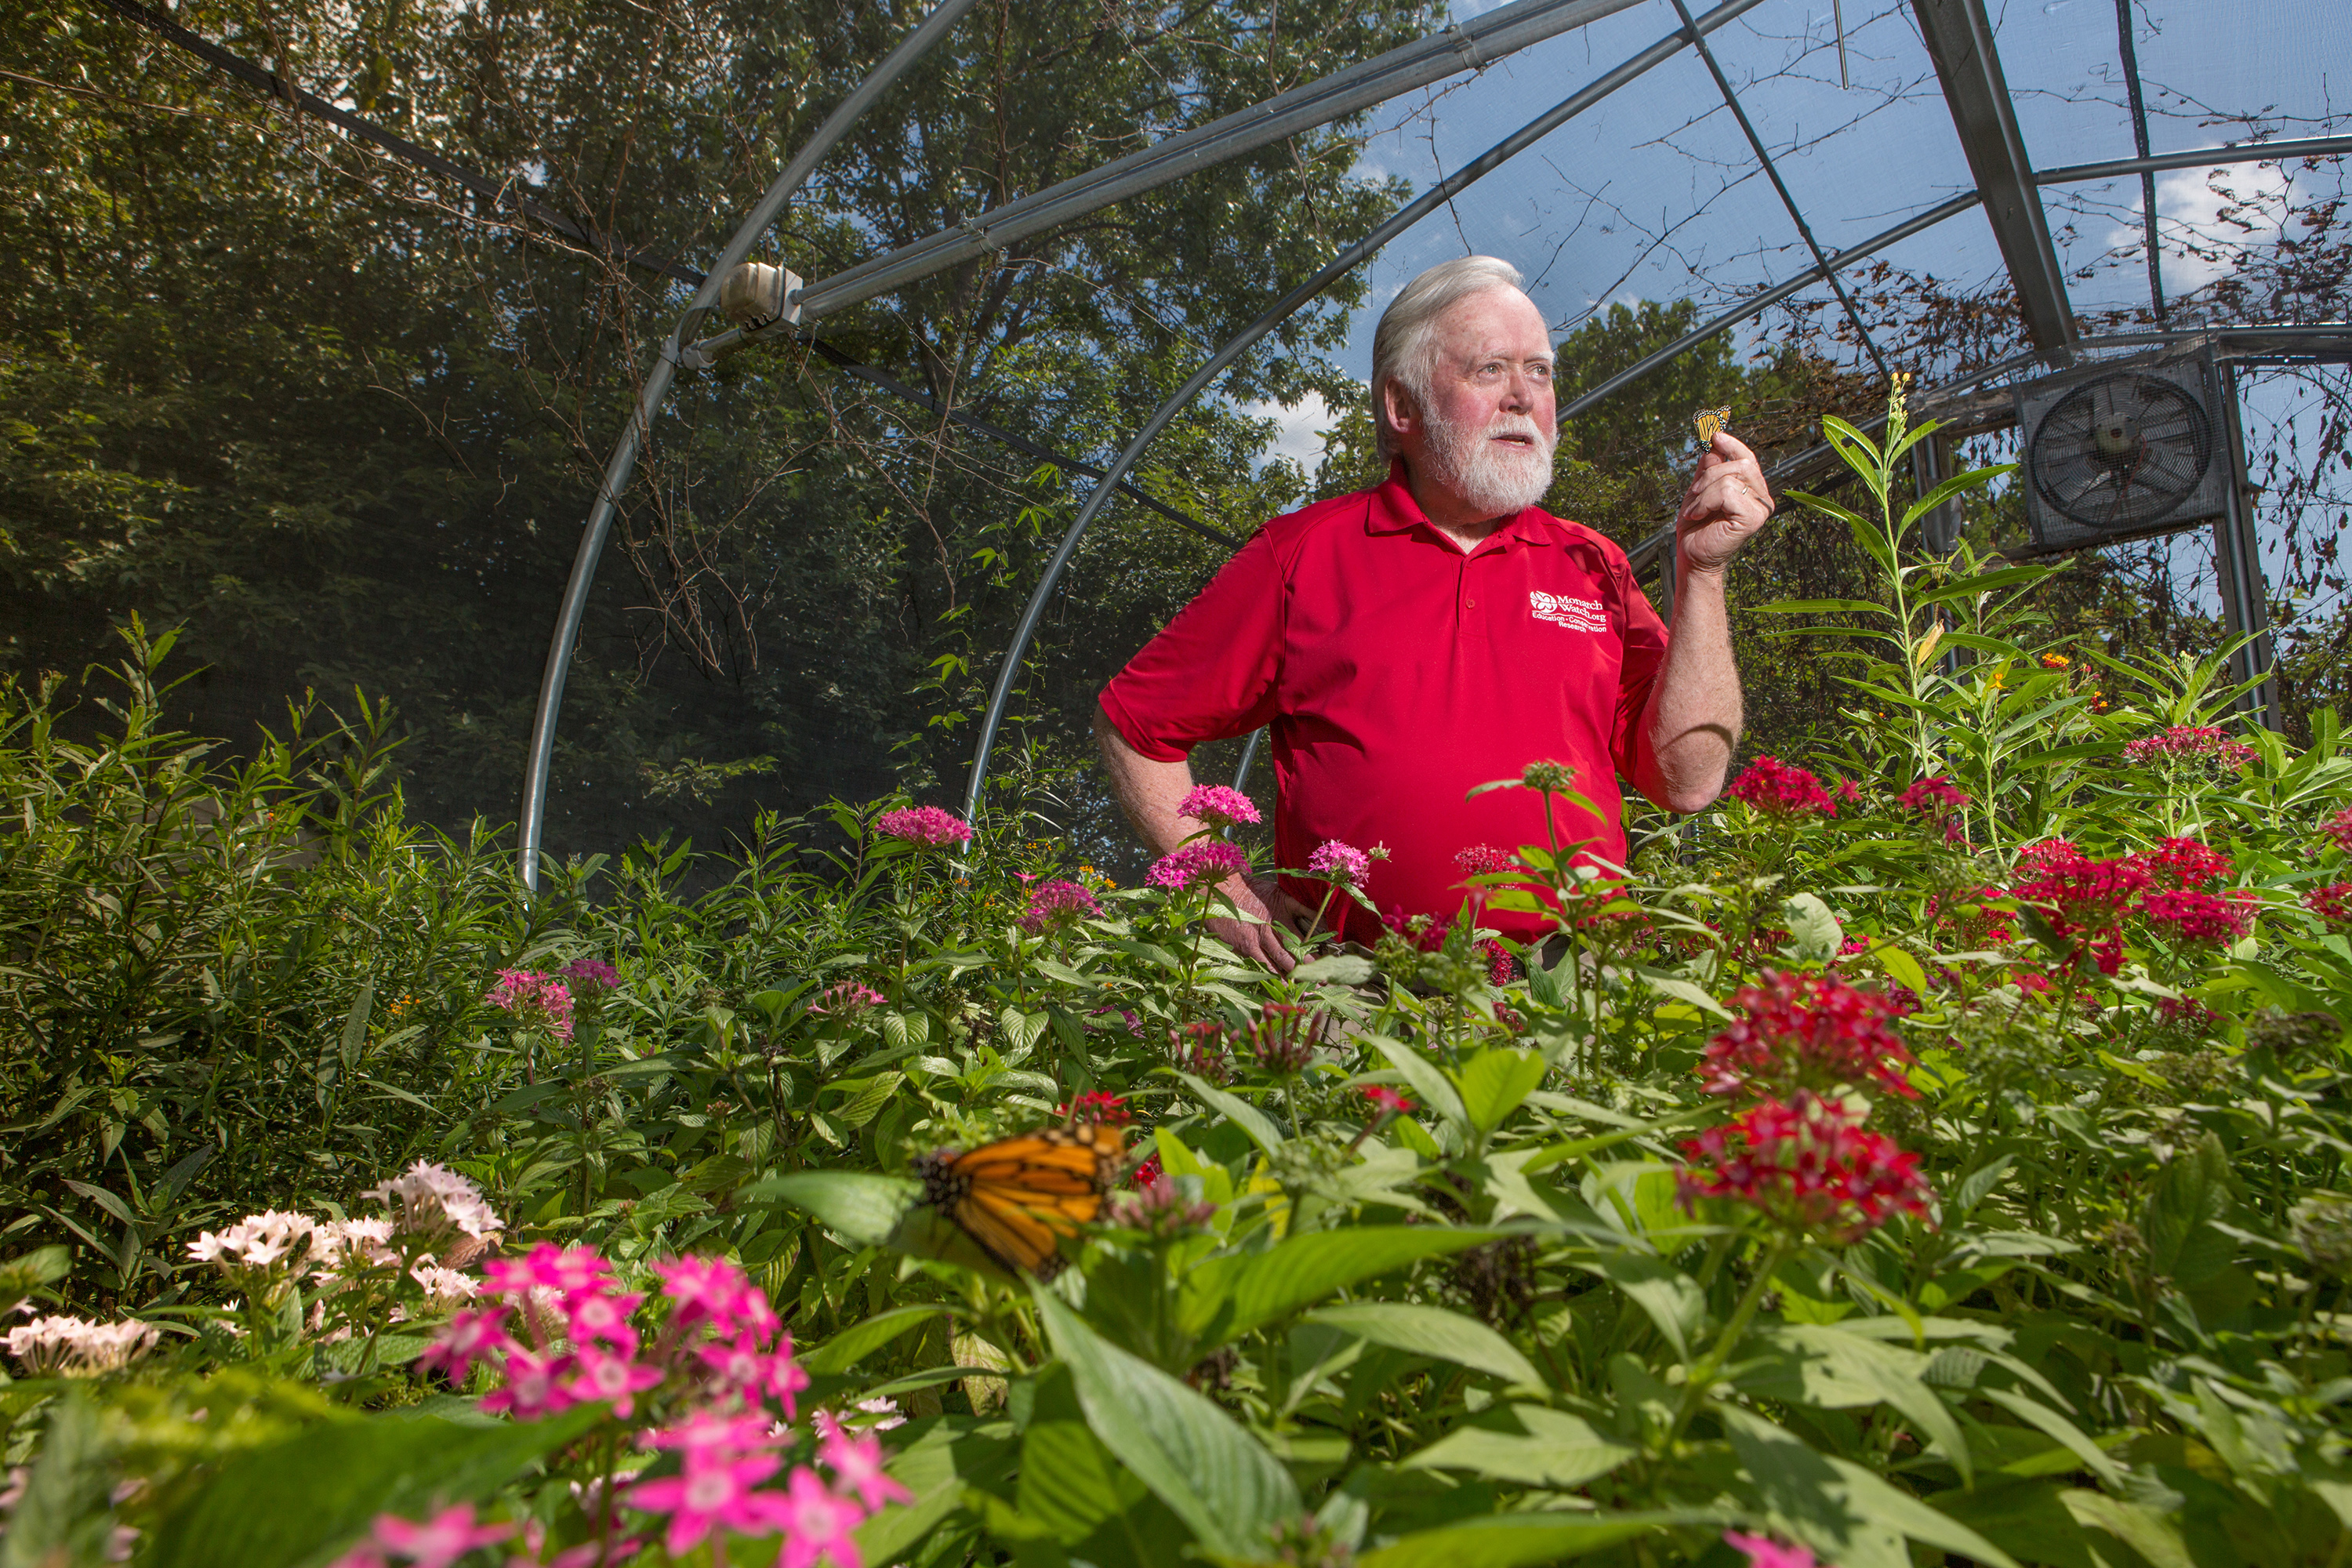 UConn alum Orley R. 'Chip' Taylor '66 MS, '70 Ph.D., wants everyone to plant a little milkweed and bring back the quickly disappearing monarch butterfly. (Photo courtesy of the University of Kansas/Marketing Communications)